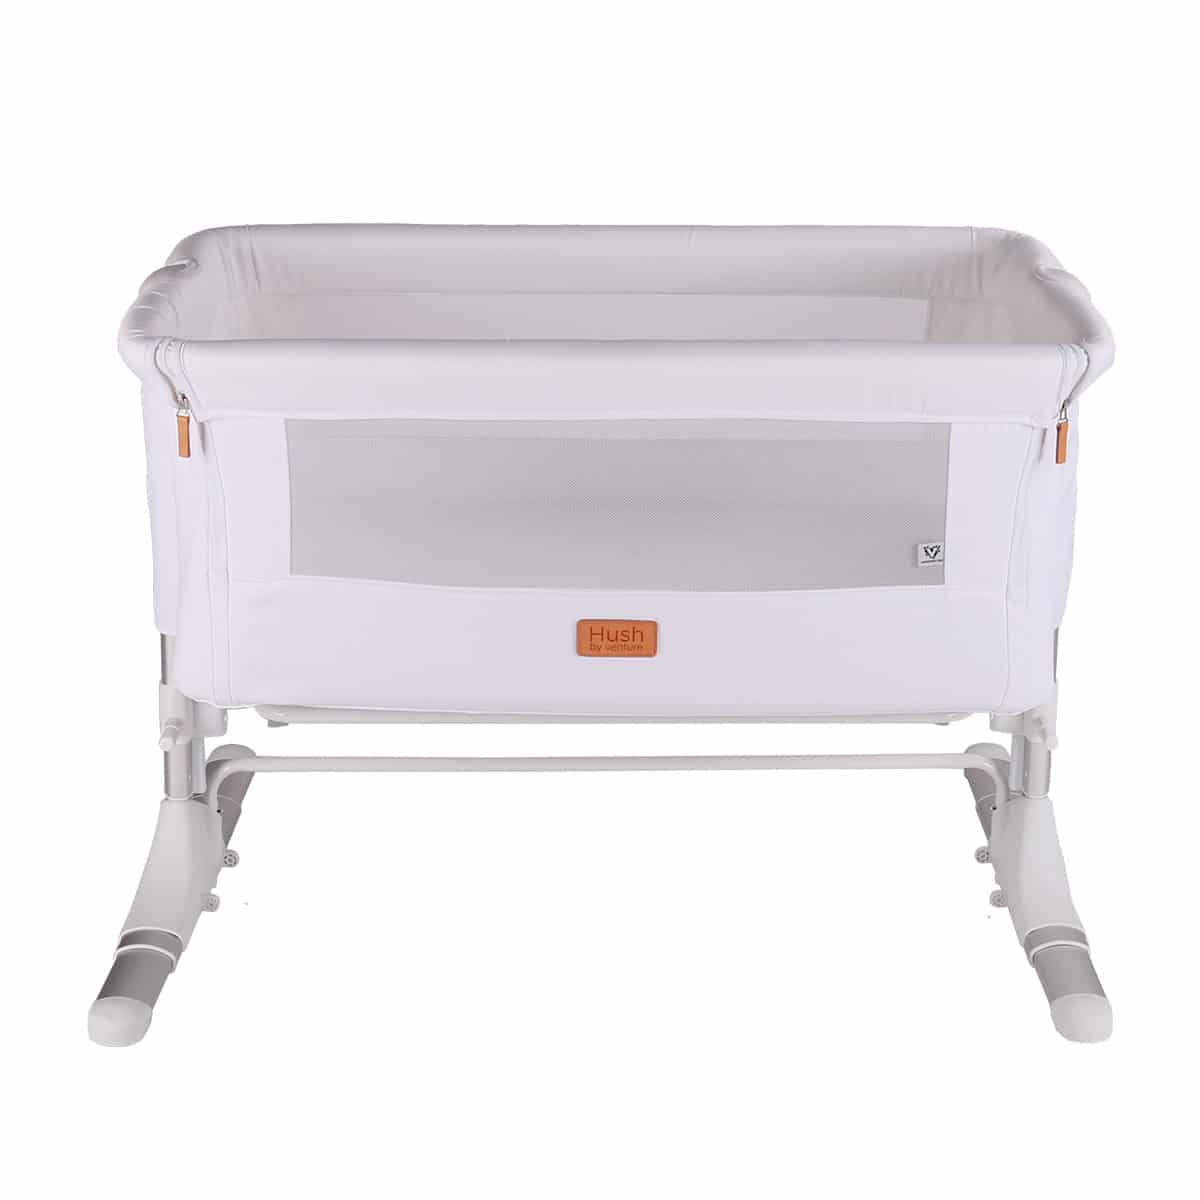 Hush co-sleeer and bedside crib